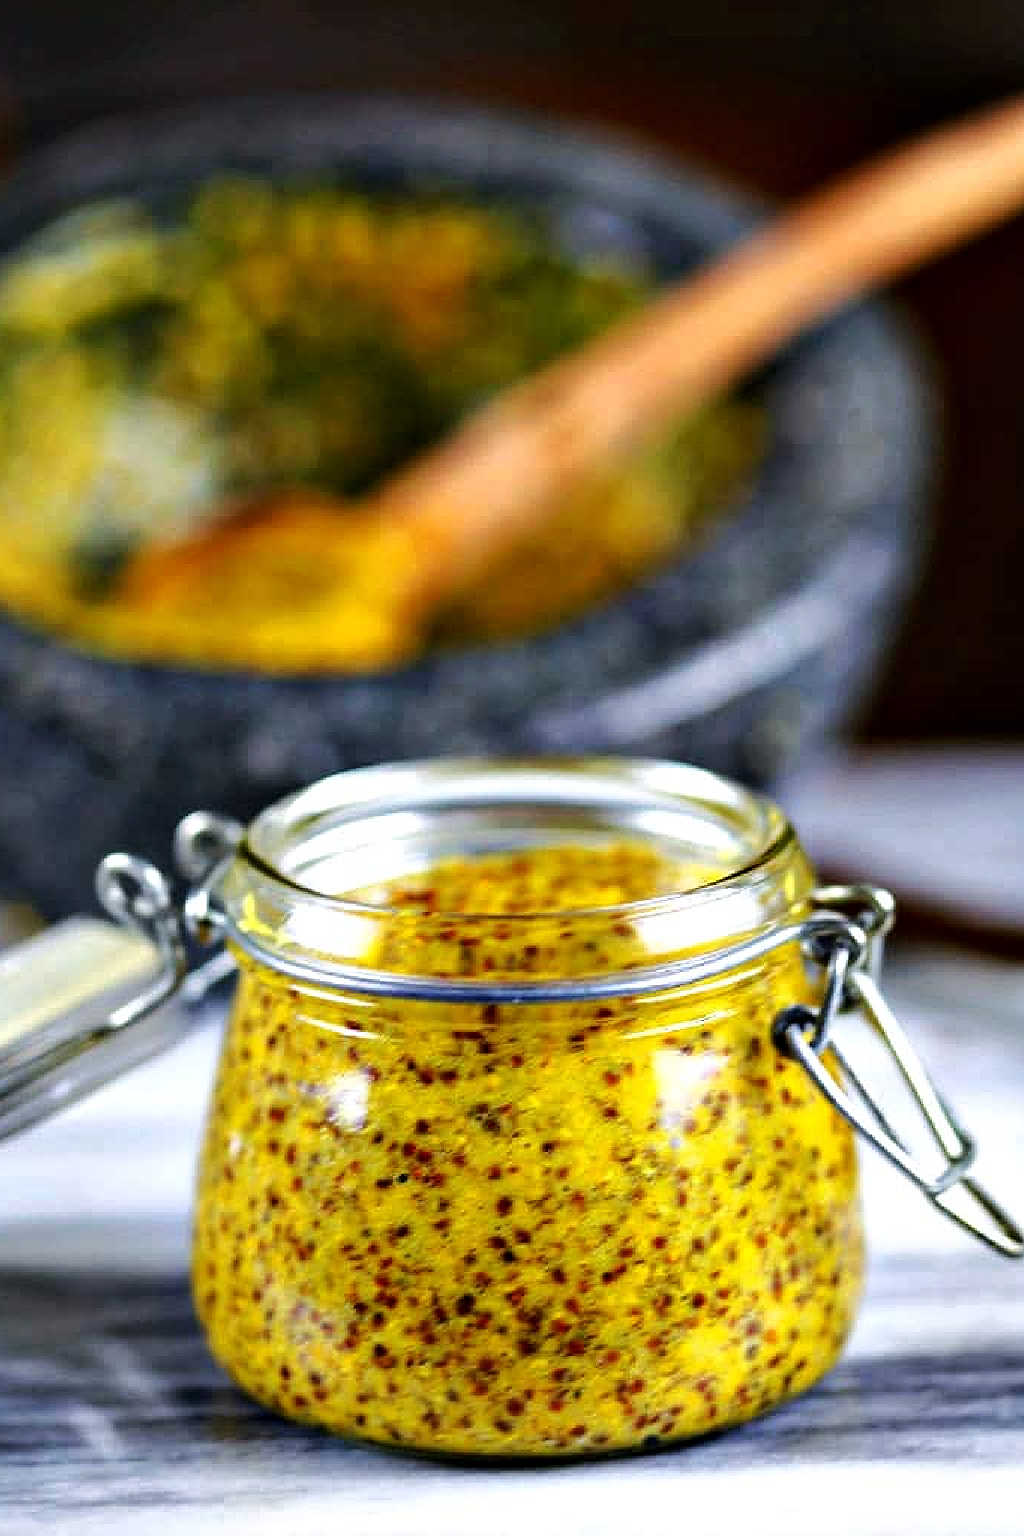 homemade stone-ground mustard in a glass jar on a counter.